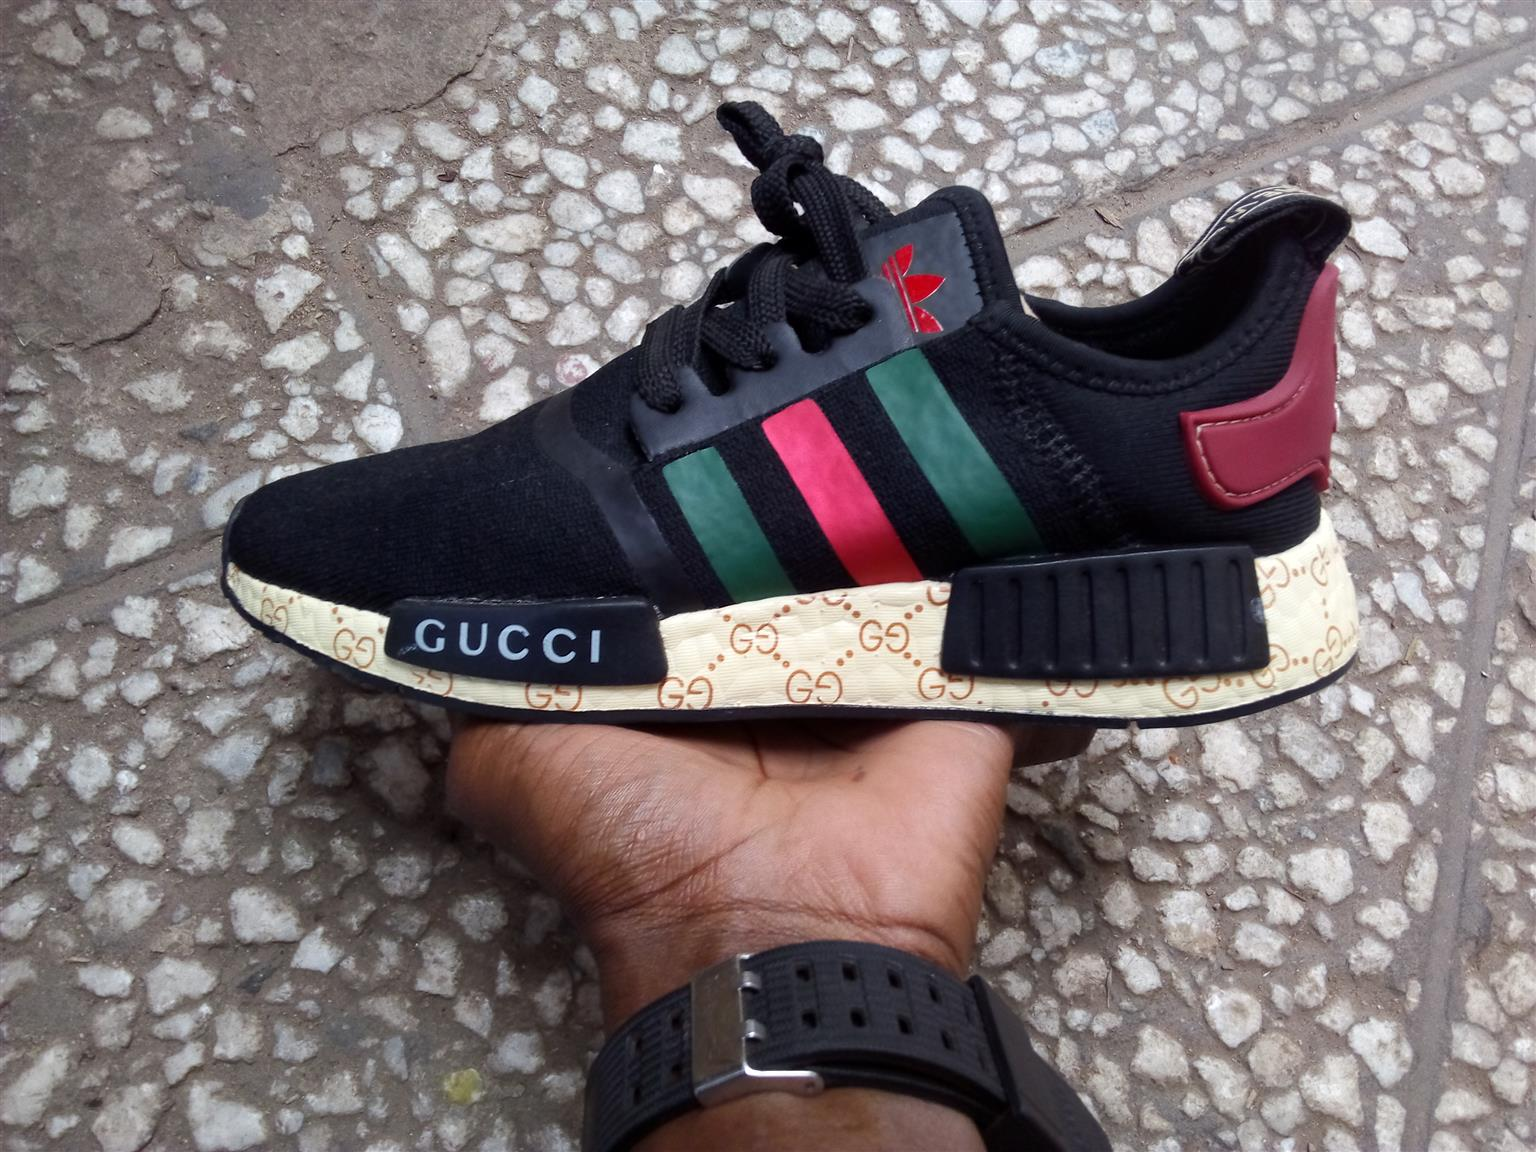 Adidas NMD Gucci Sneakers